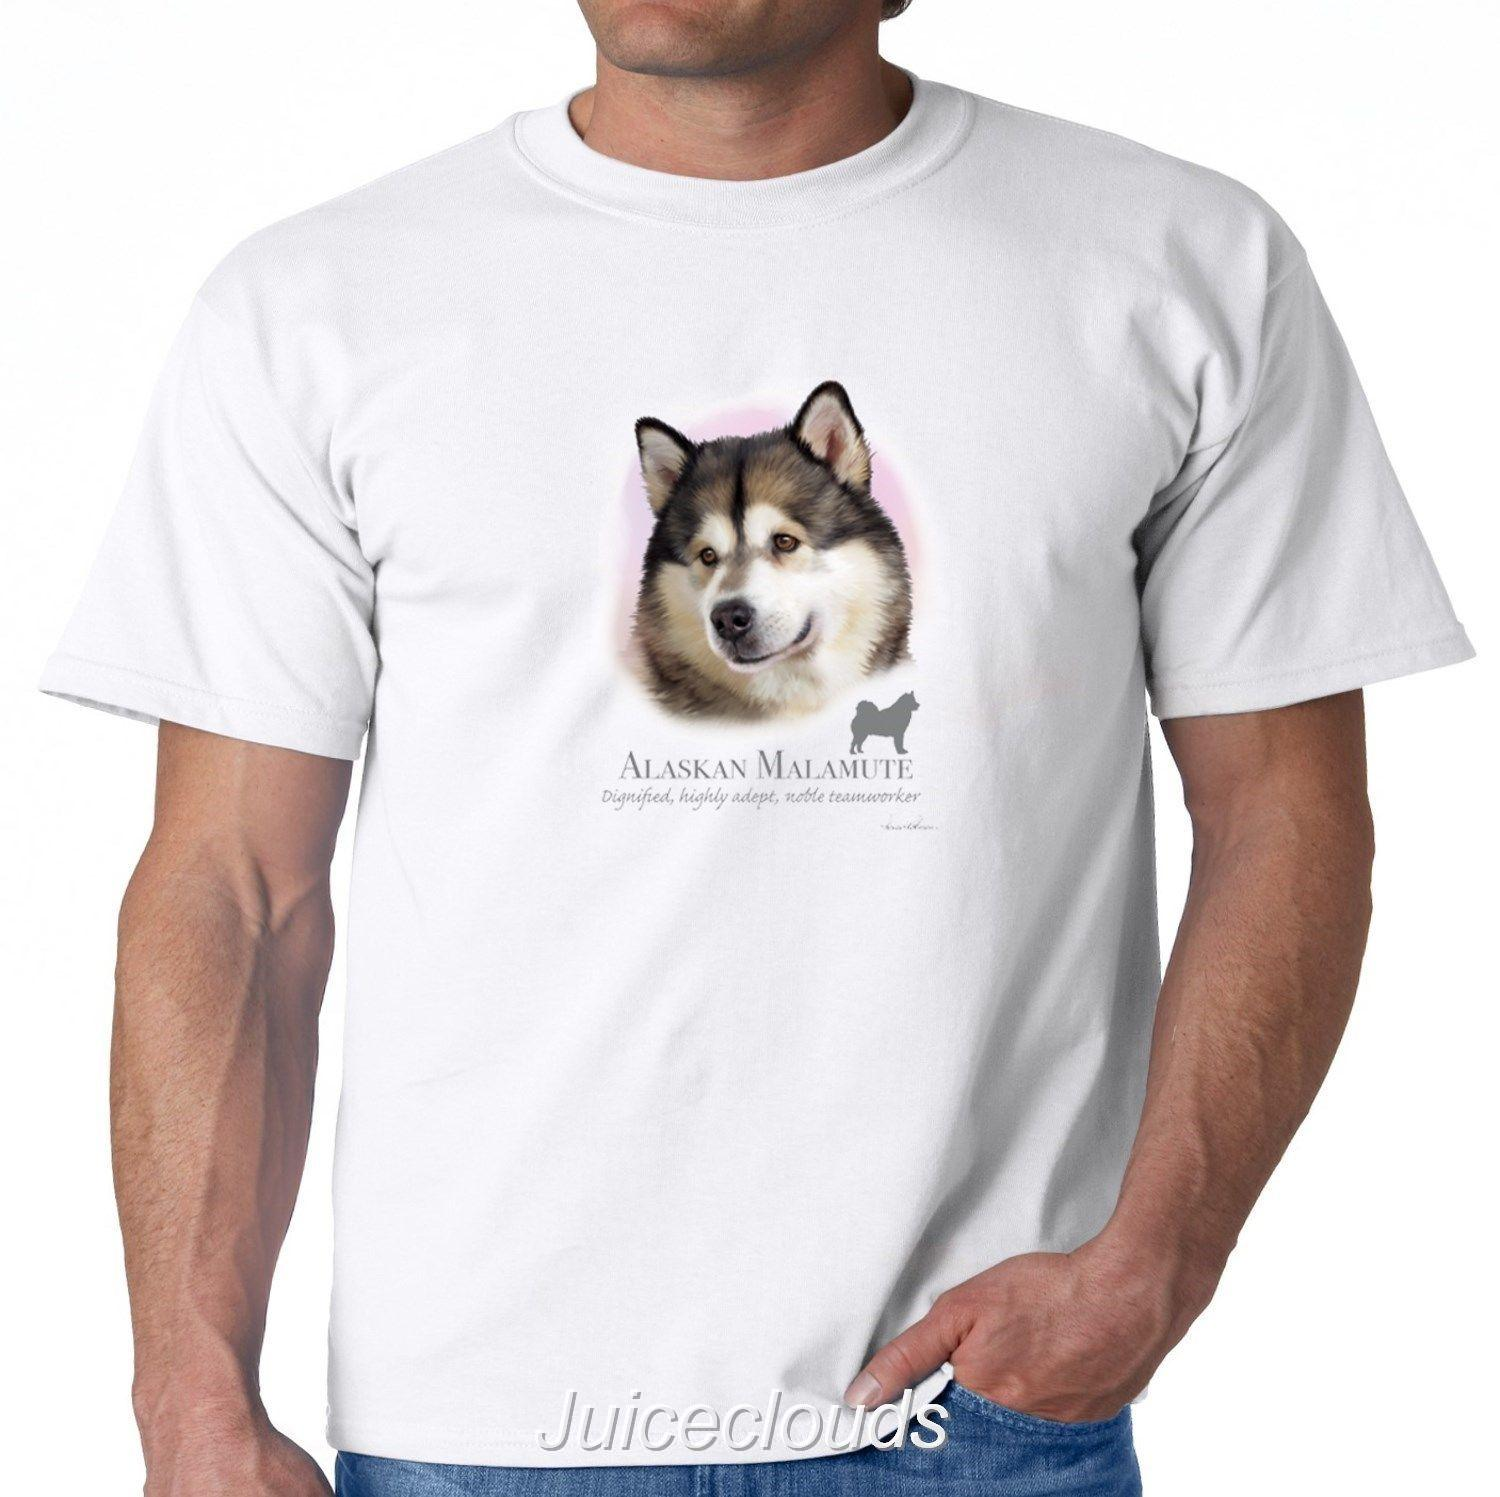 9c509cffc Alaskan Malamute T Shirt Puppy Pet Rescue Dog Owner Men'S Tee Print Fitness T  Shirt Men Classic Casual T Shirt Summer T Shirt Tops 10 T Shirt Awesome T  ...